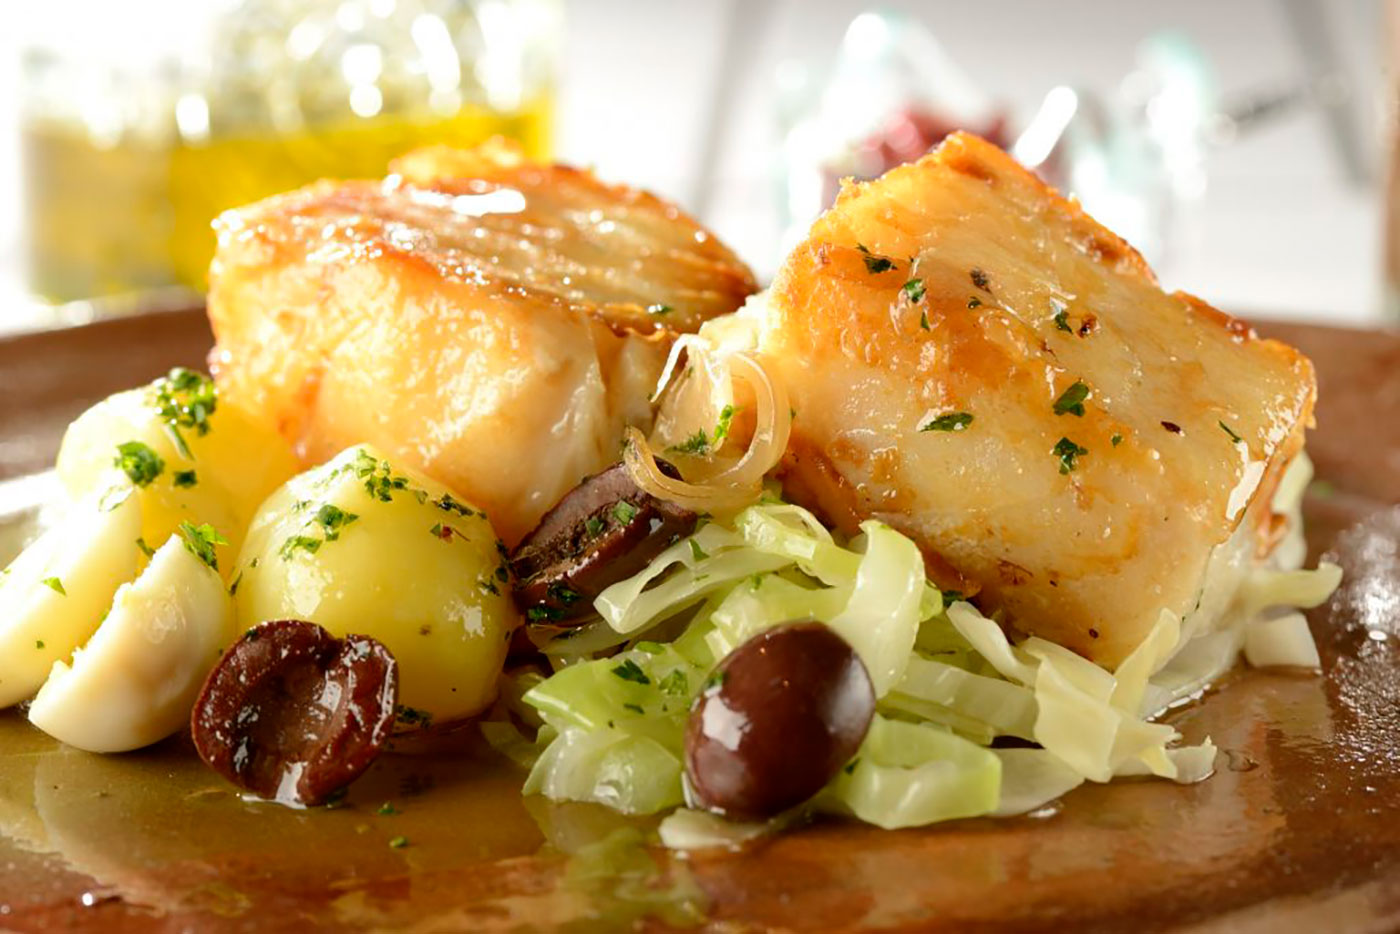 Cod fish, great Easter specialty in Spain and Portugal for Easter